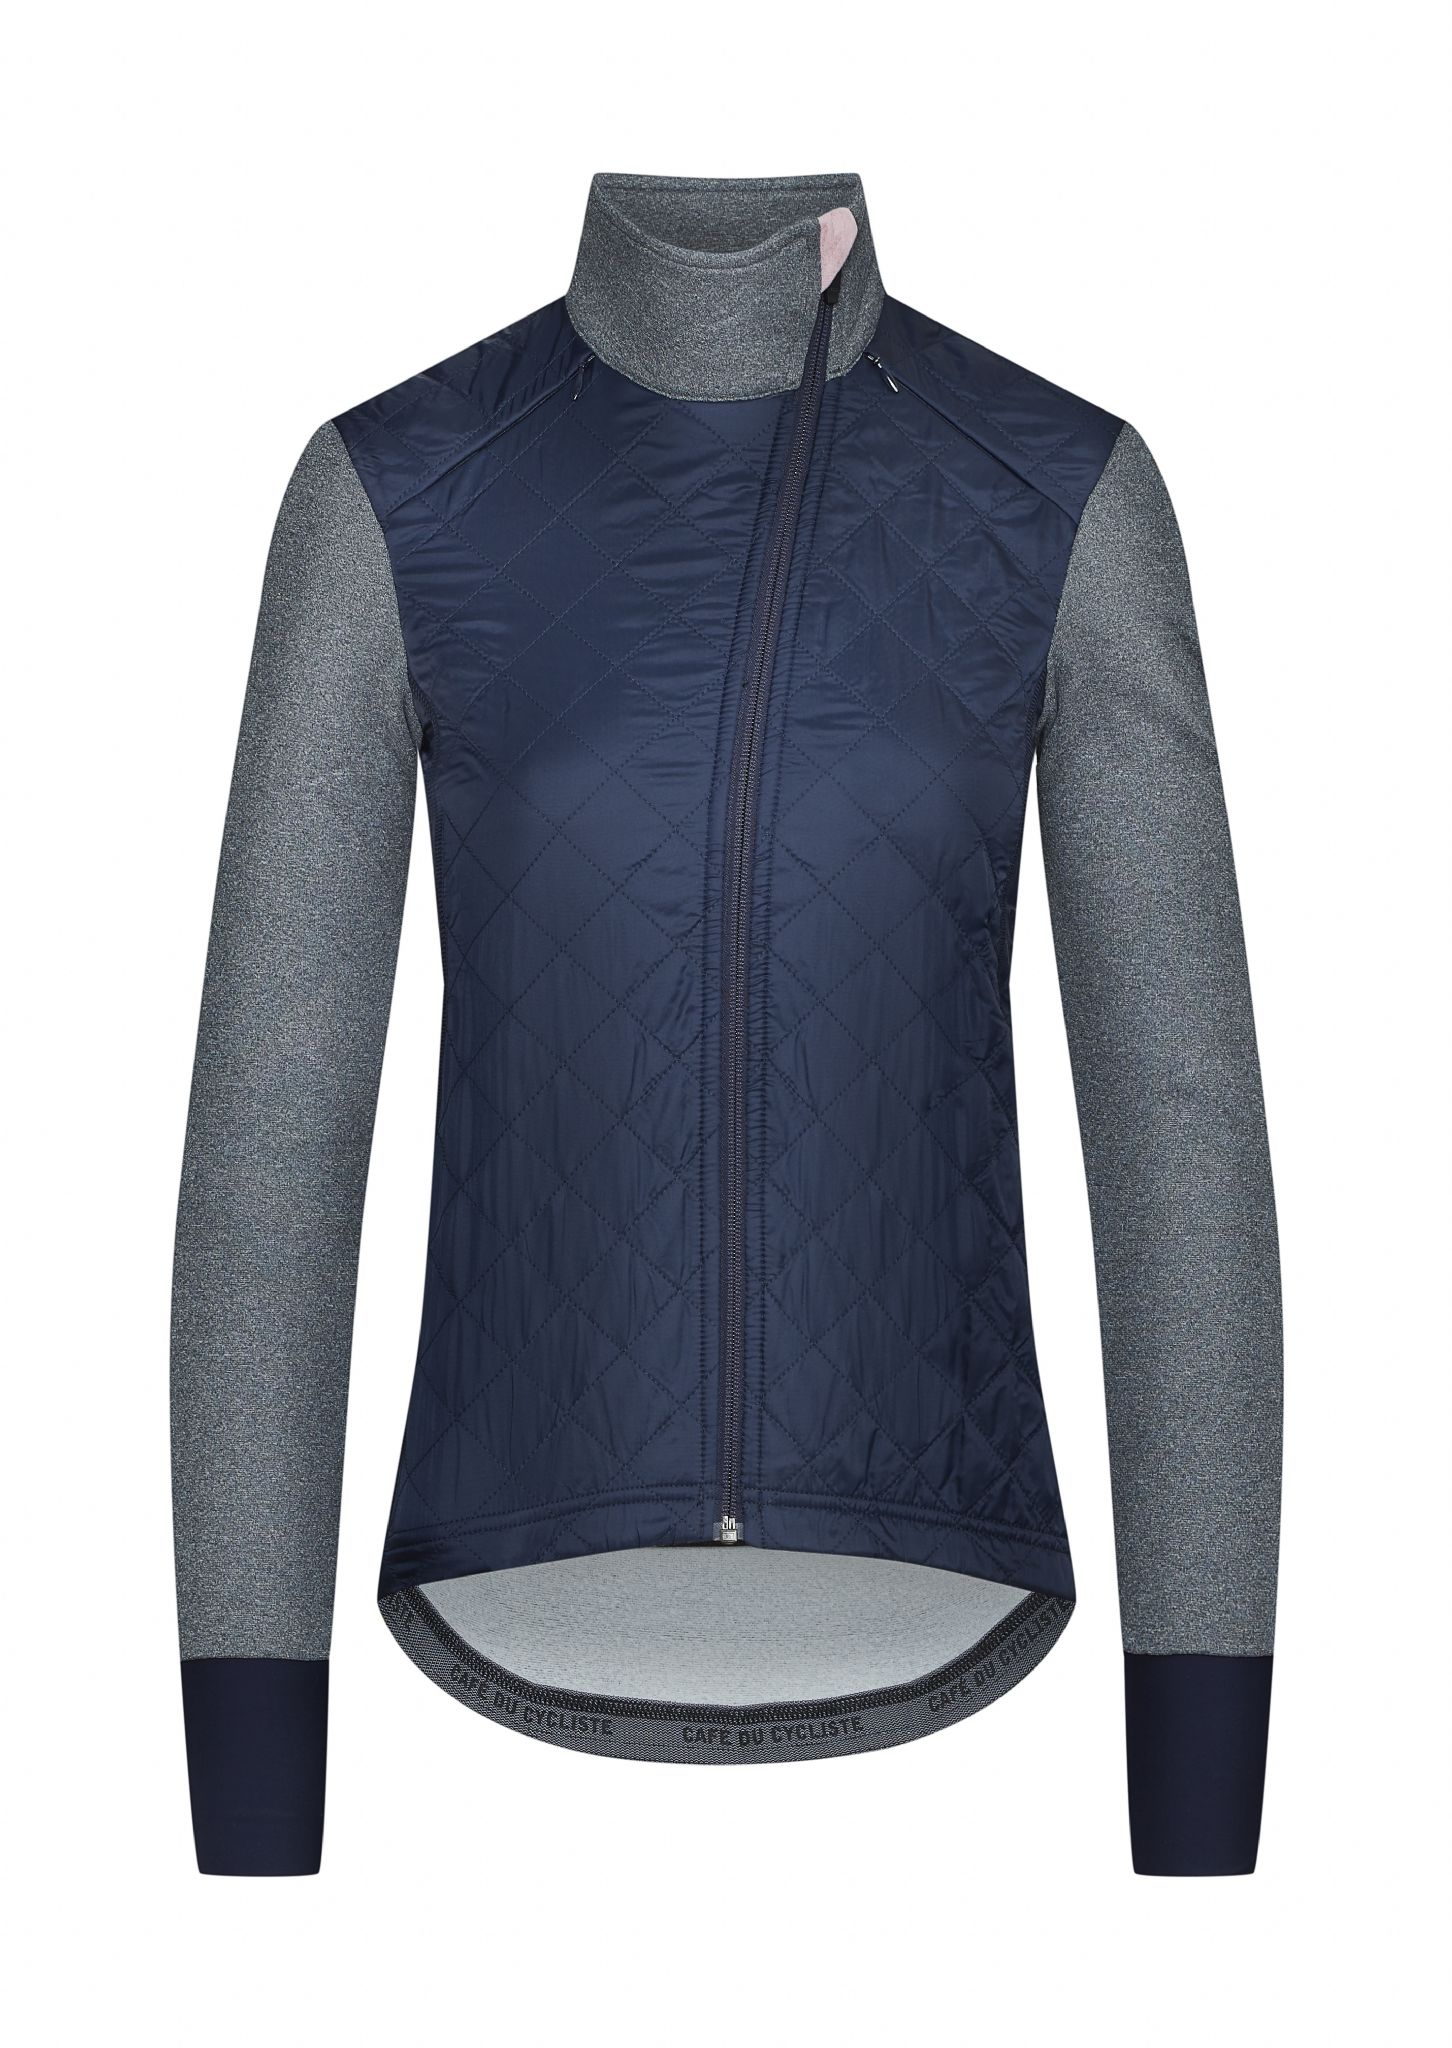 38b87dc1788 Café Du Cycliste Women s Heidi Windproof Jacket - Navy